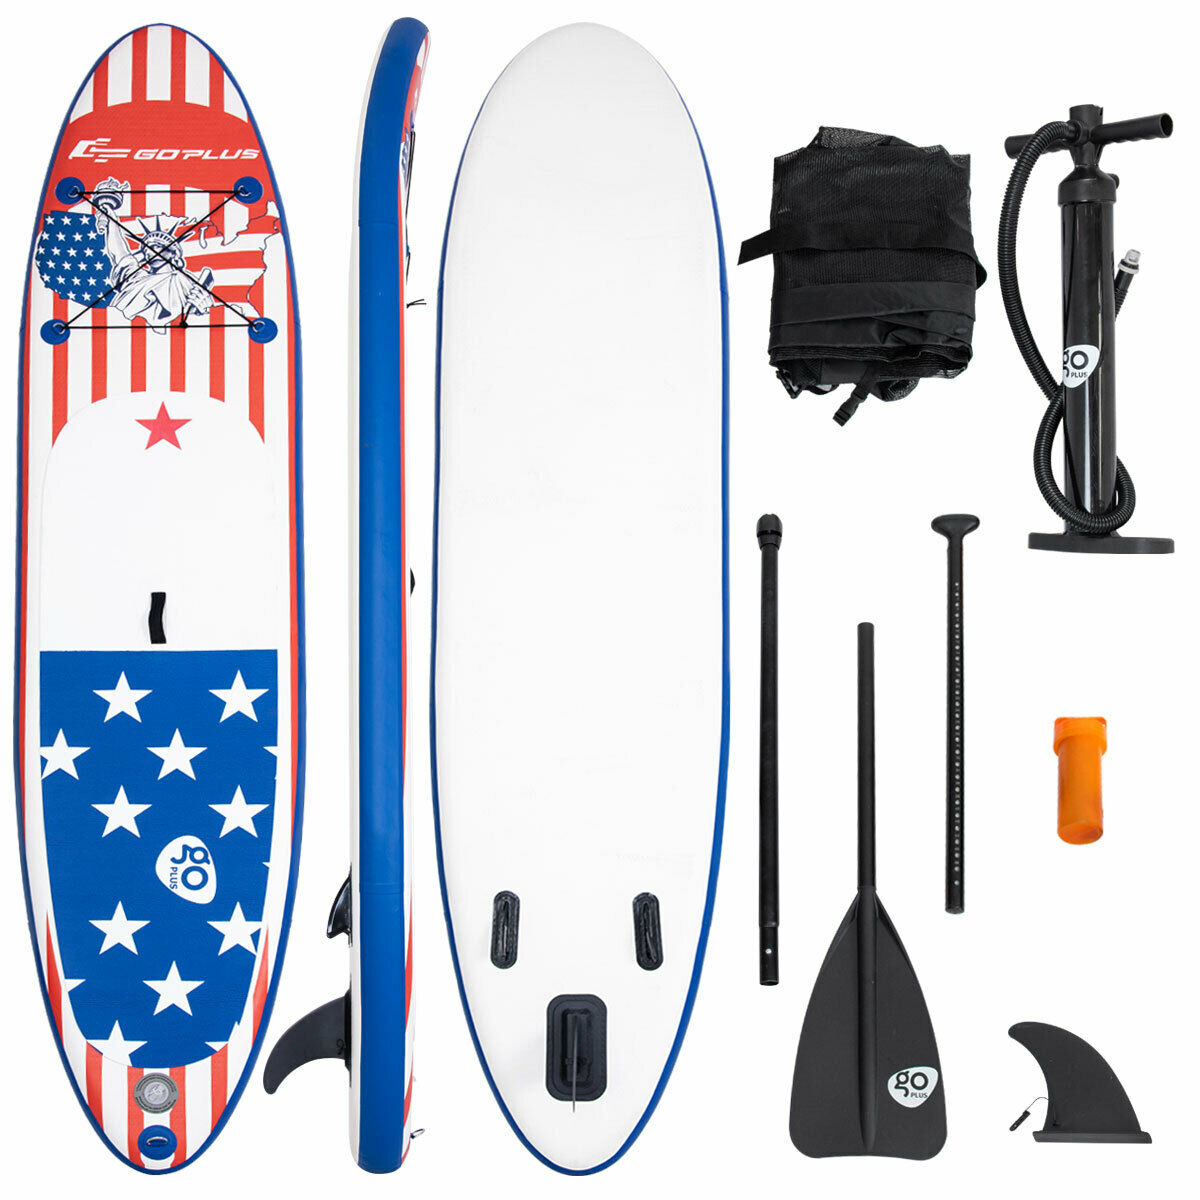 Costway Goplus 11' Inflatable Stand Up Paddle Board SUP W/ Fin Adjustable Paddle Backpack Sport